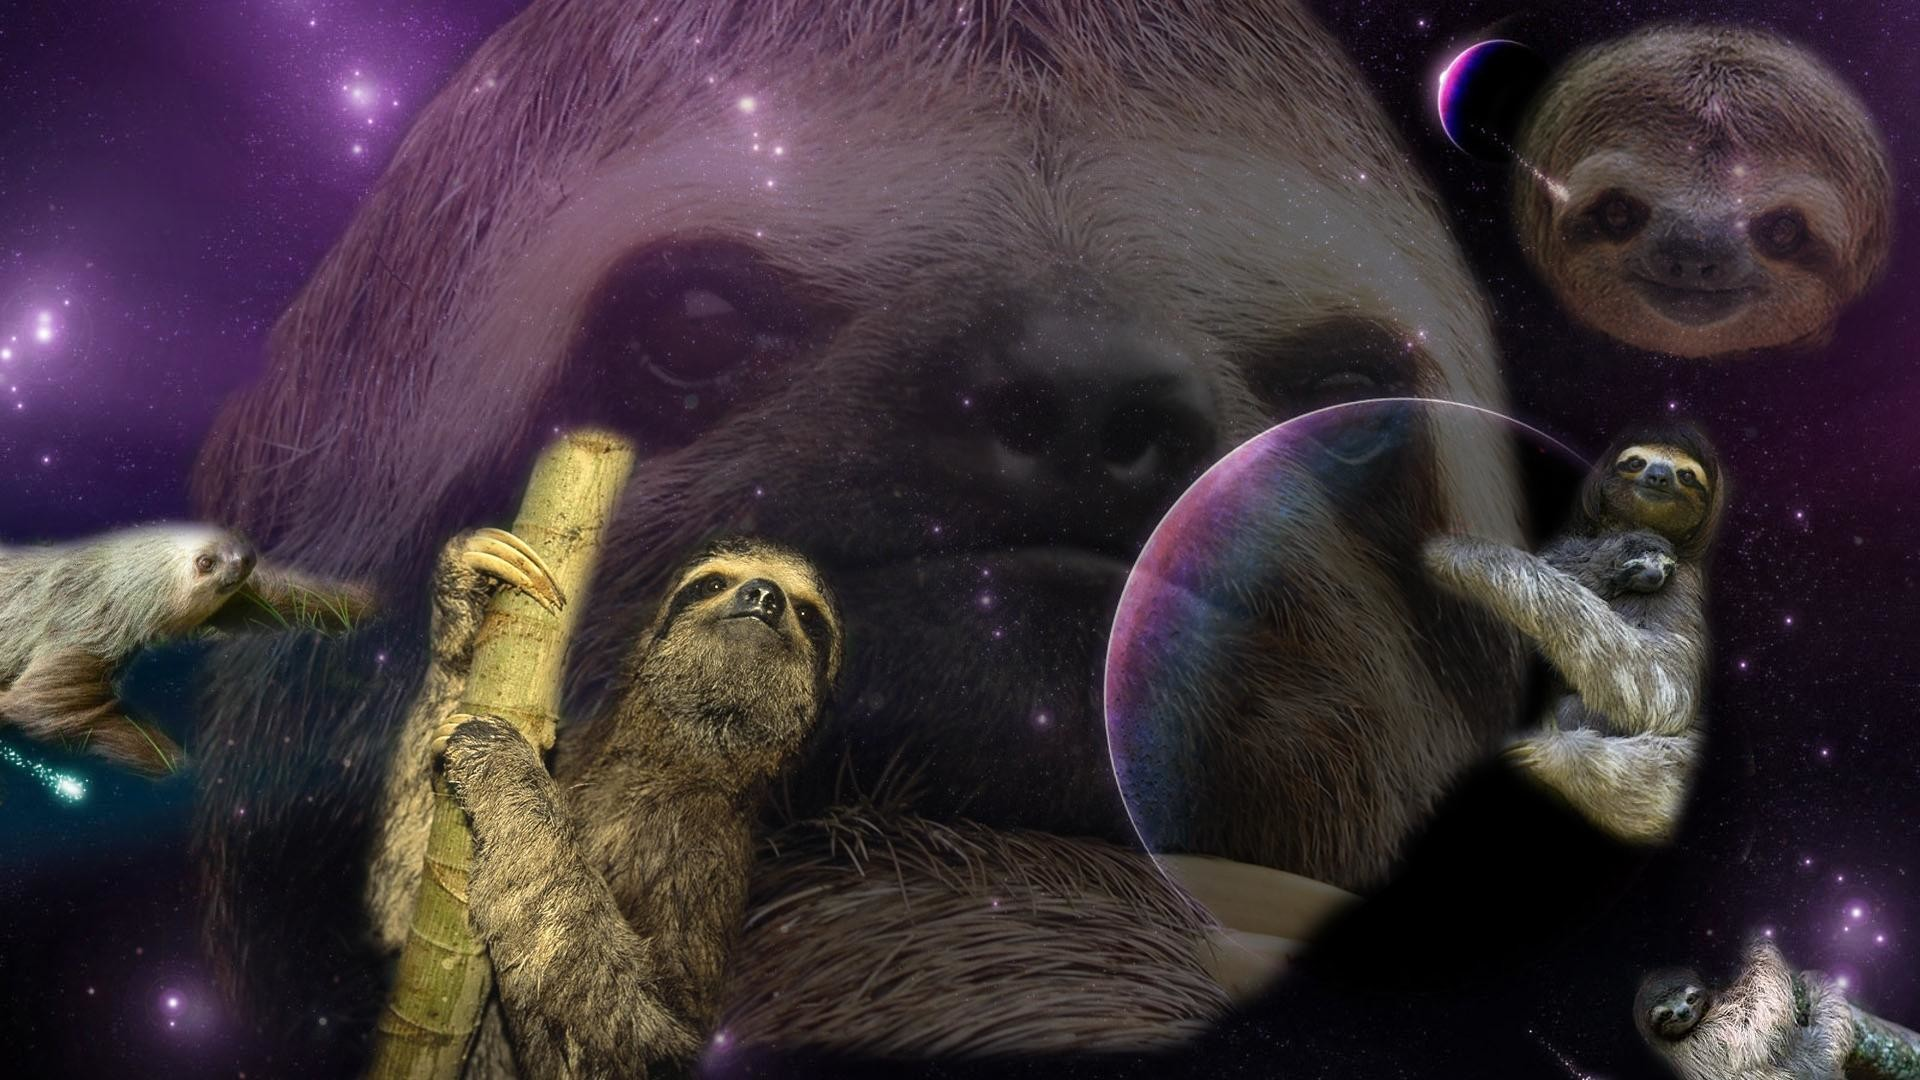 in class and created a sloth wallpaper. I'm currently adding one sloth .